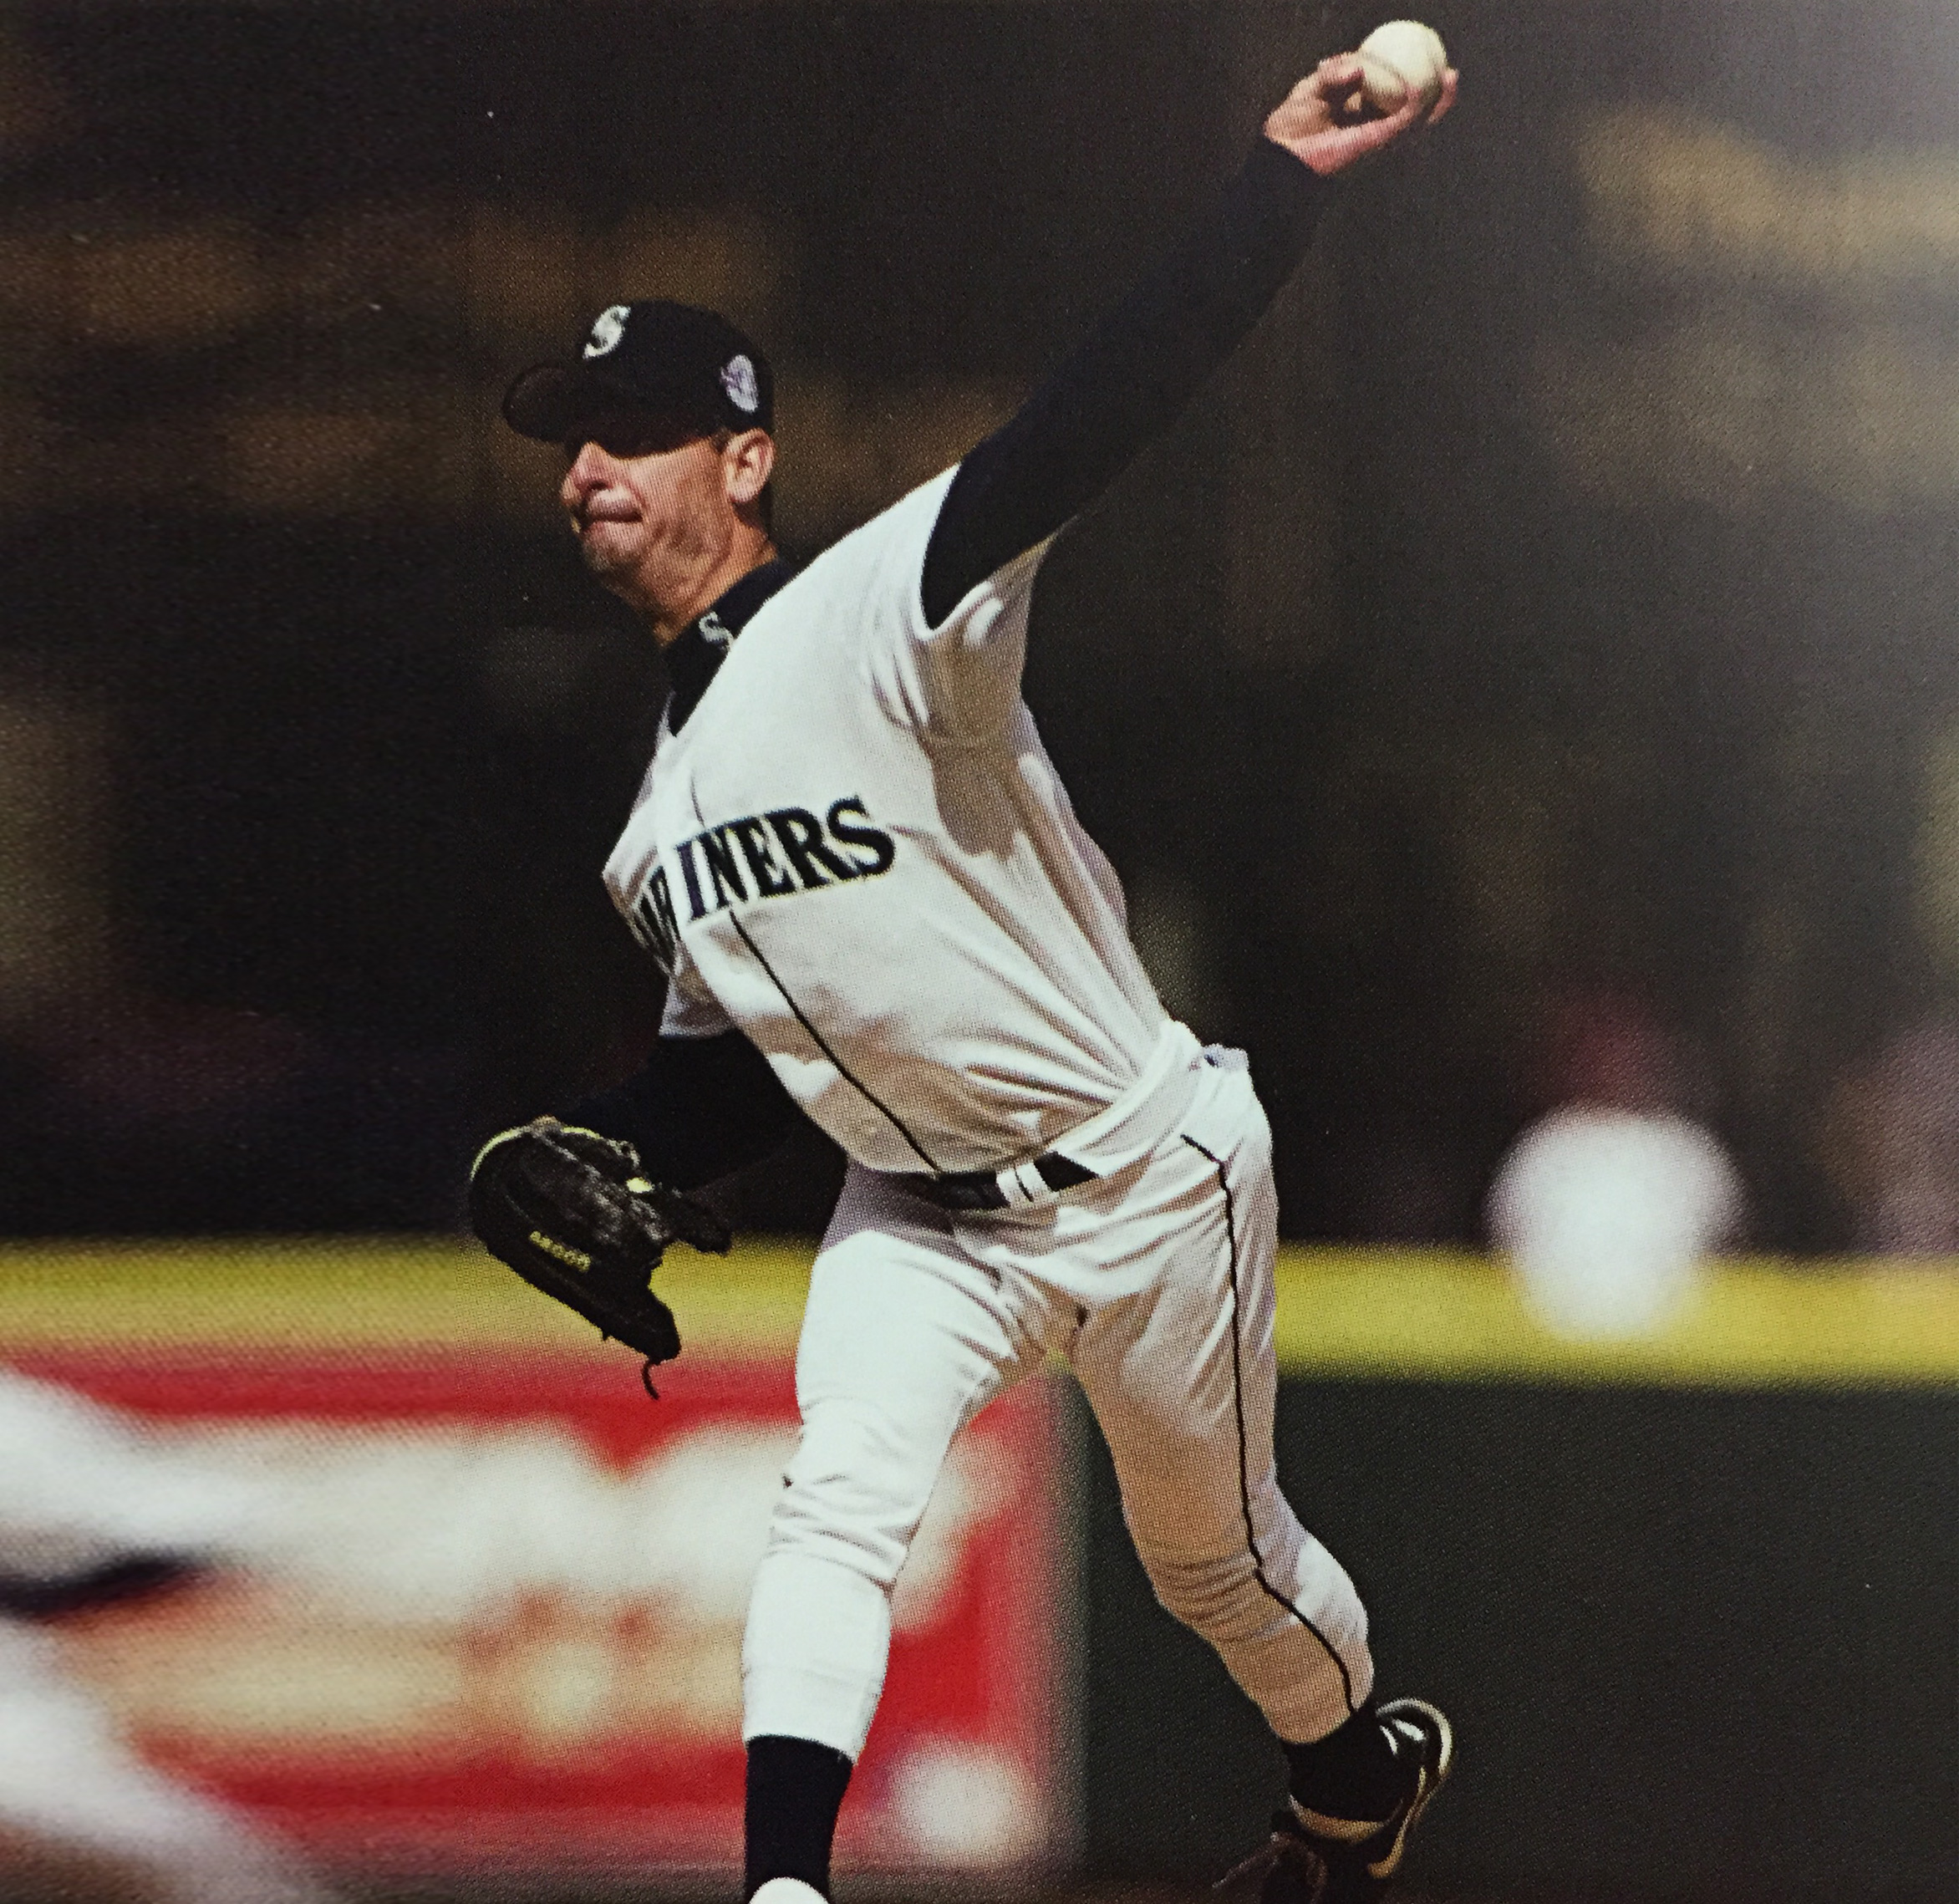 Qtek-Products-Feature-Post-Jamie-Moyer-Baseballs-One-Percent-Pitching